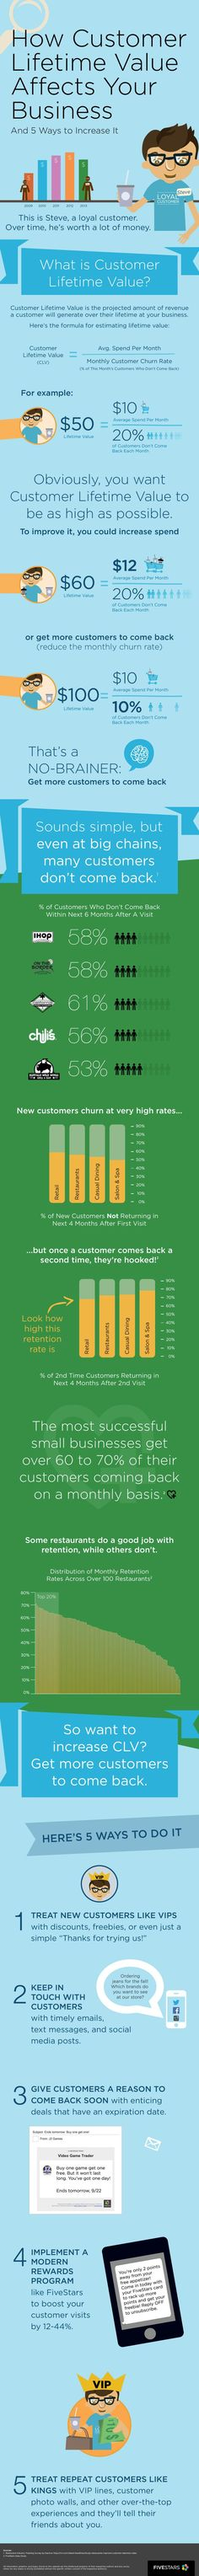 The customer lifetime value is the projected revenue a business is expected to generate from a customer during their lifetime. The most obvious ways to boost the customer lifetime value is to increase marketing spend and reduce the churn rate by encouraging more customers to come back. That is easier said than done, but this infographic, by Fivestars, offers 5 basic recommendations that can help increase your business' customer retention rate and lifetime value. #clv #customerlifetimevalue